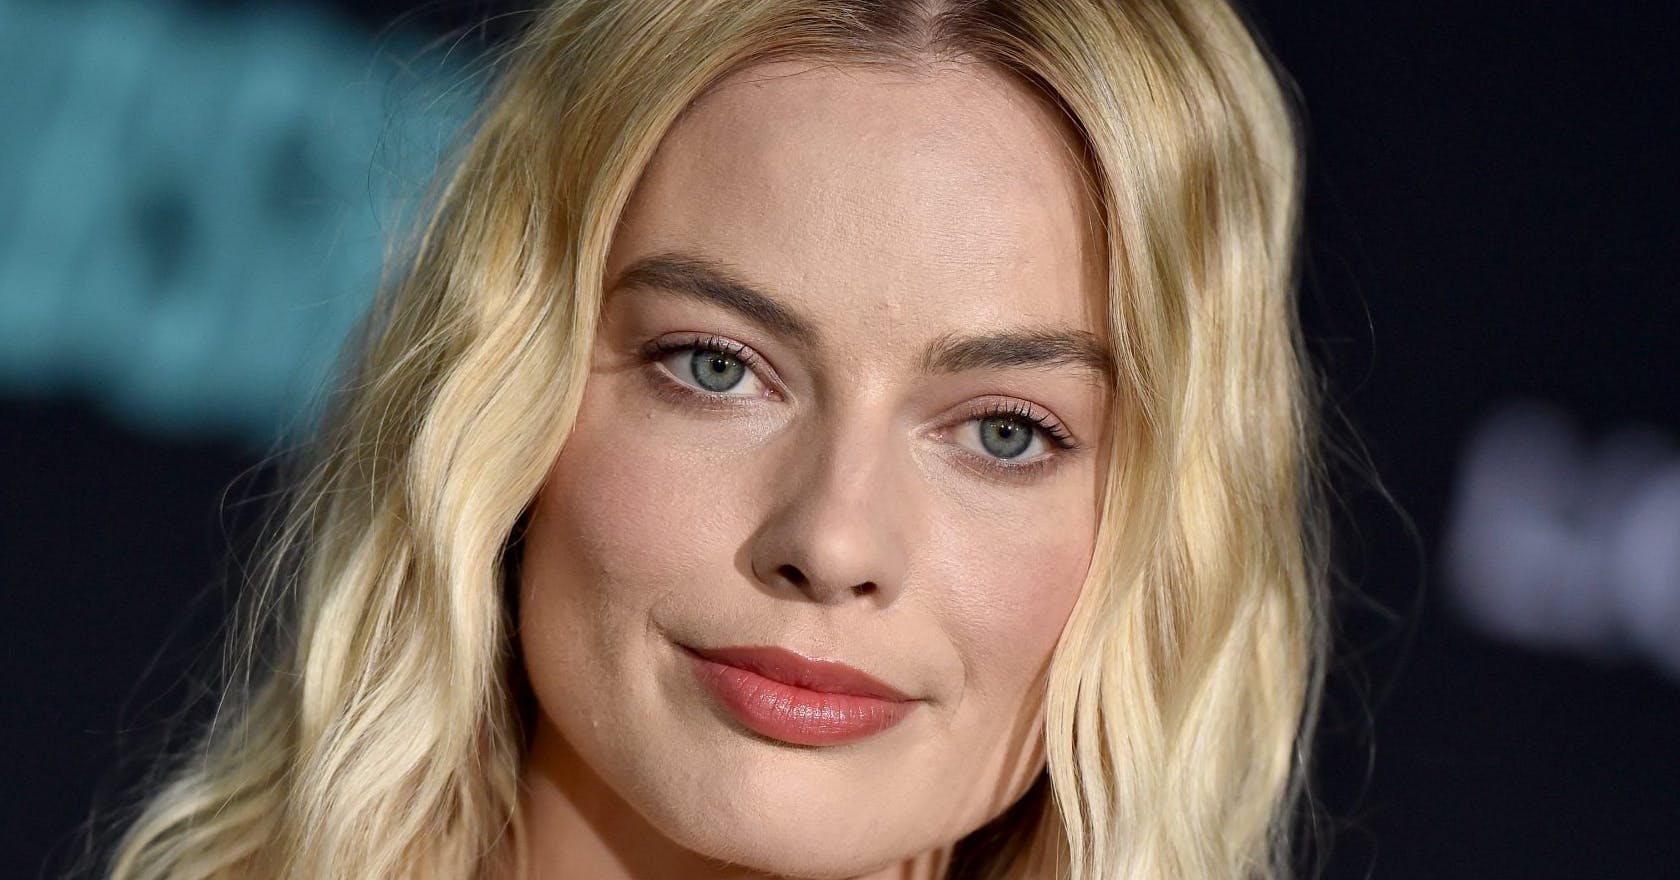 Margot Robbie is putting her stamp on this modern Disney franchise